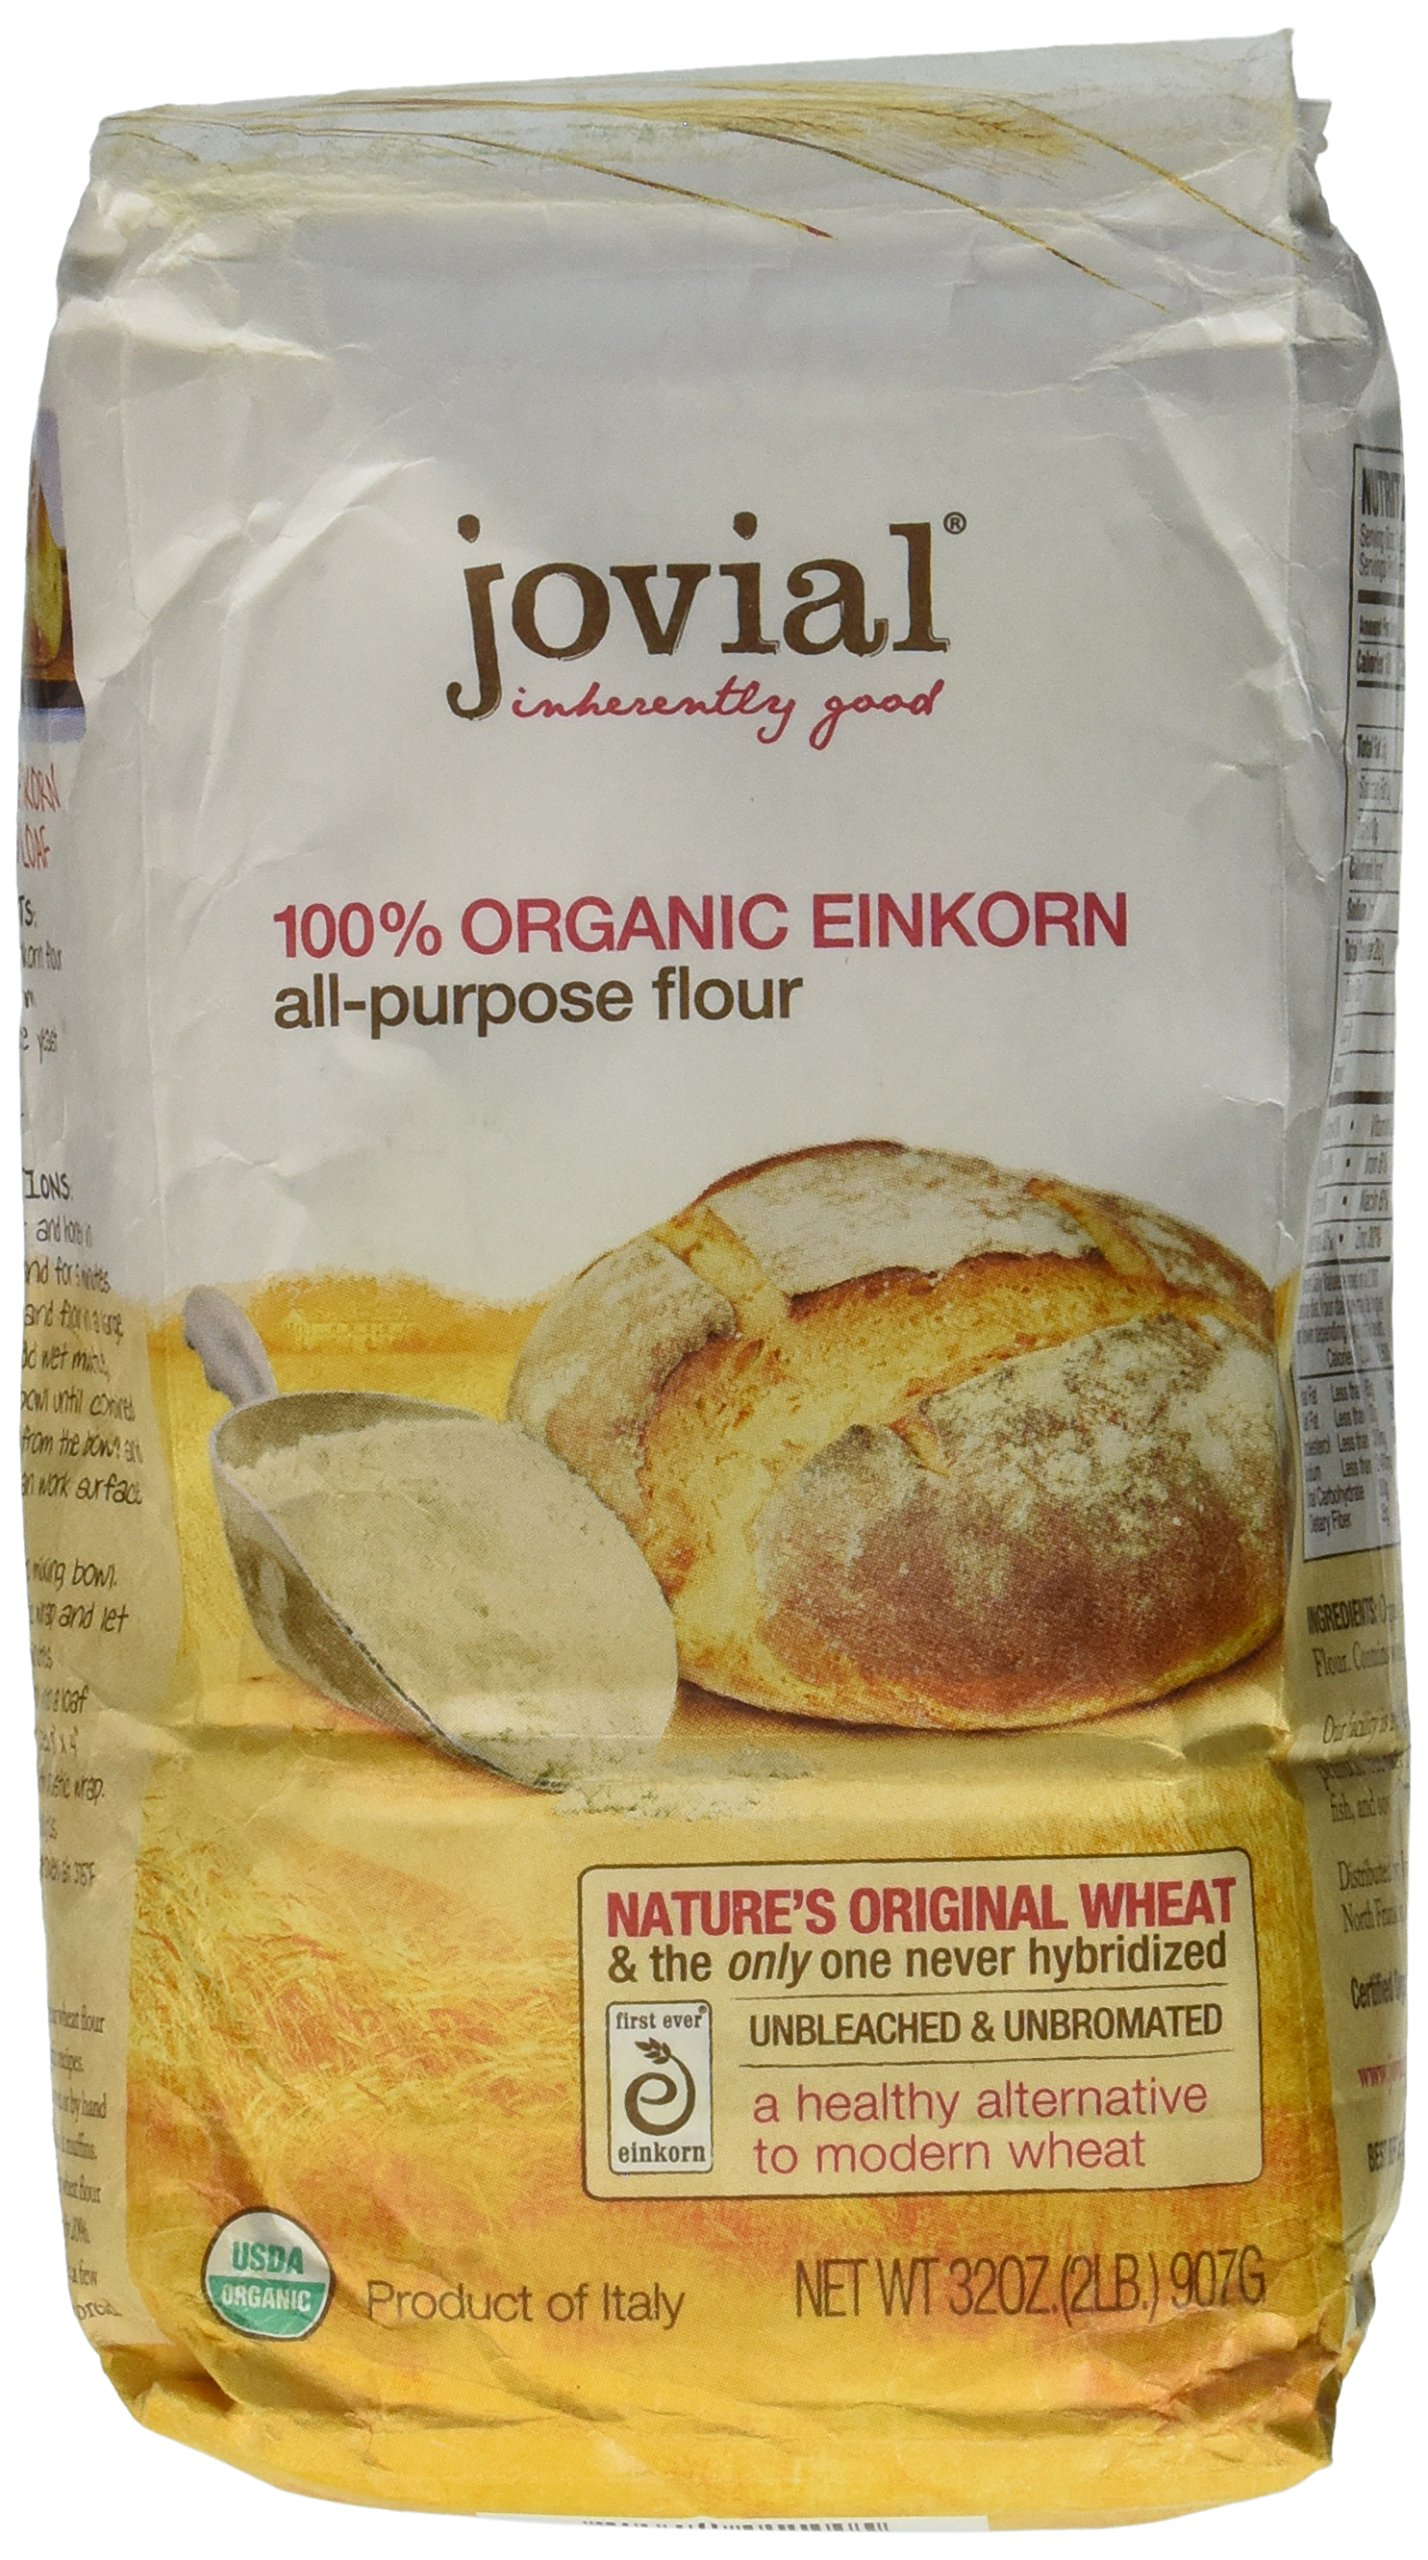 Jovial Organic Einkorn All Purpose Flour 32oz (Pack of 5)